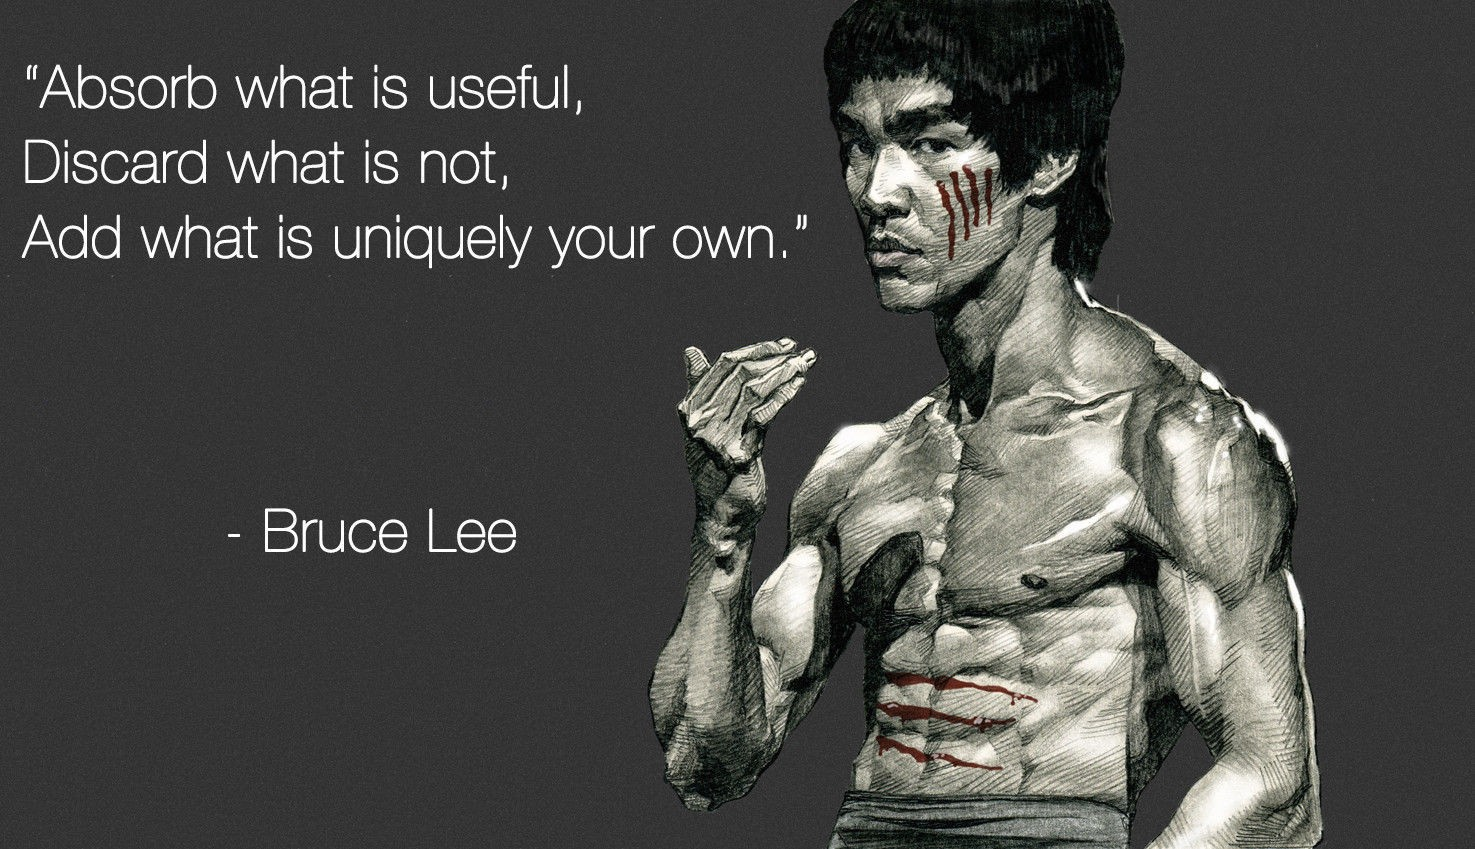 Bruce Lee Inspirational Message